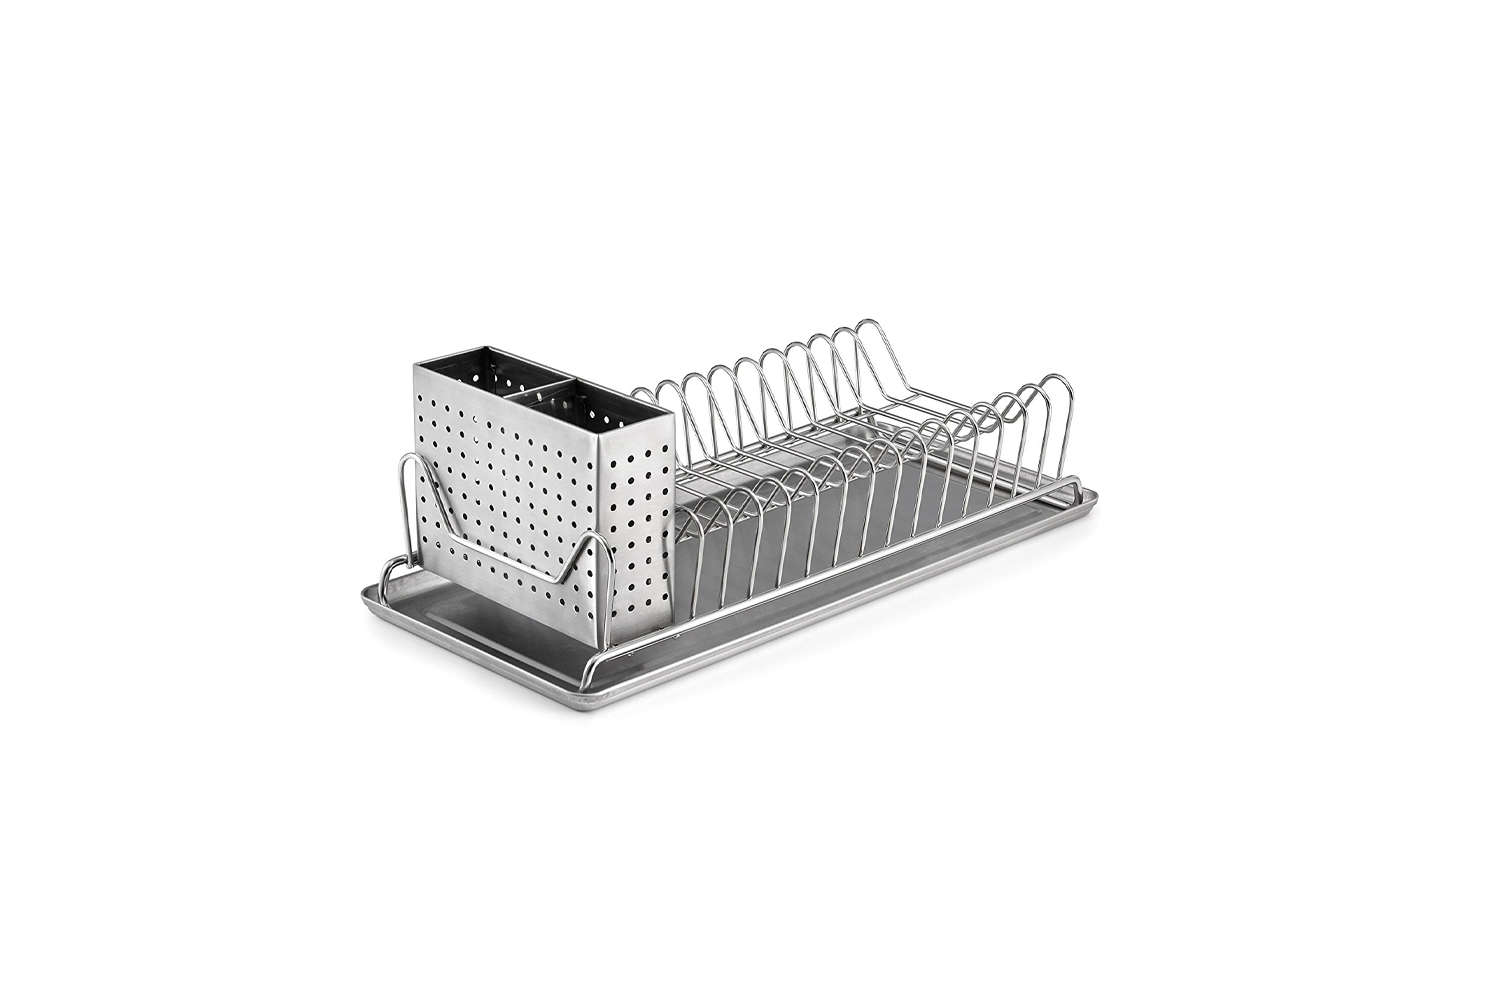 Polder Compact Stainless Steel Dish Rack